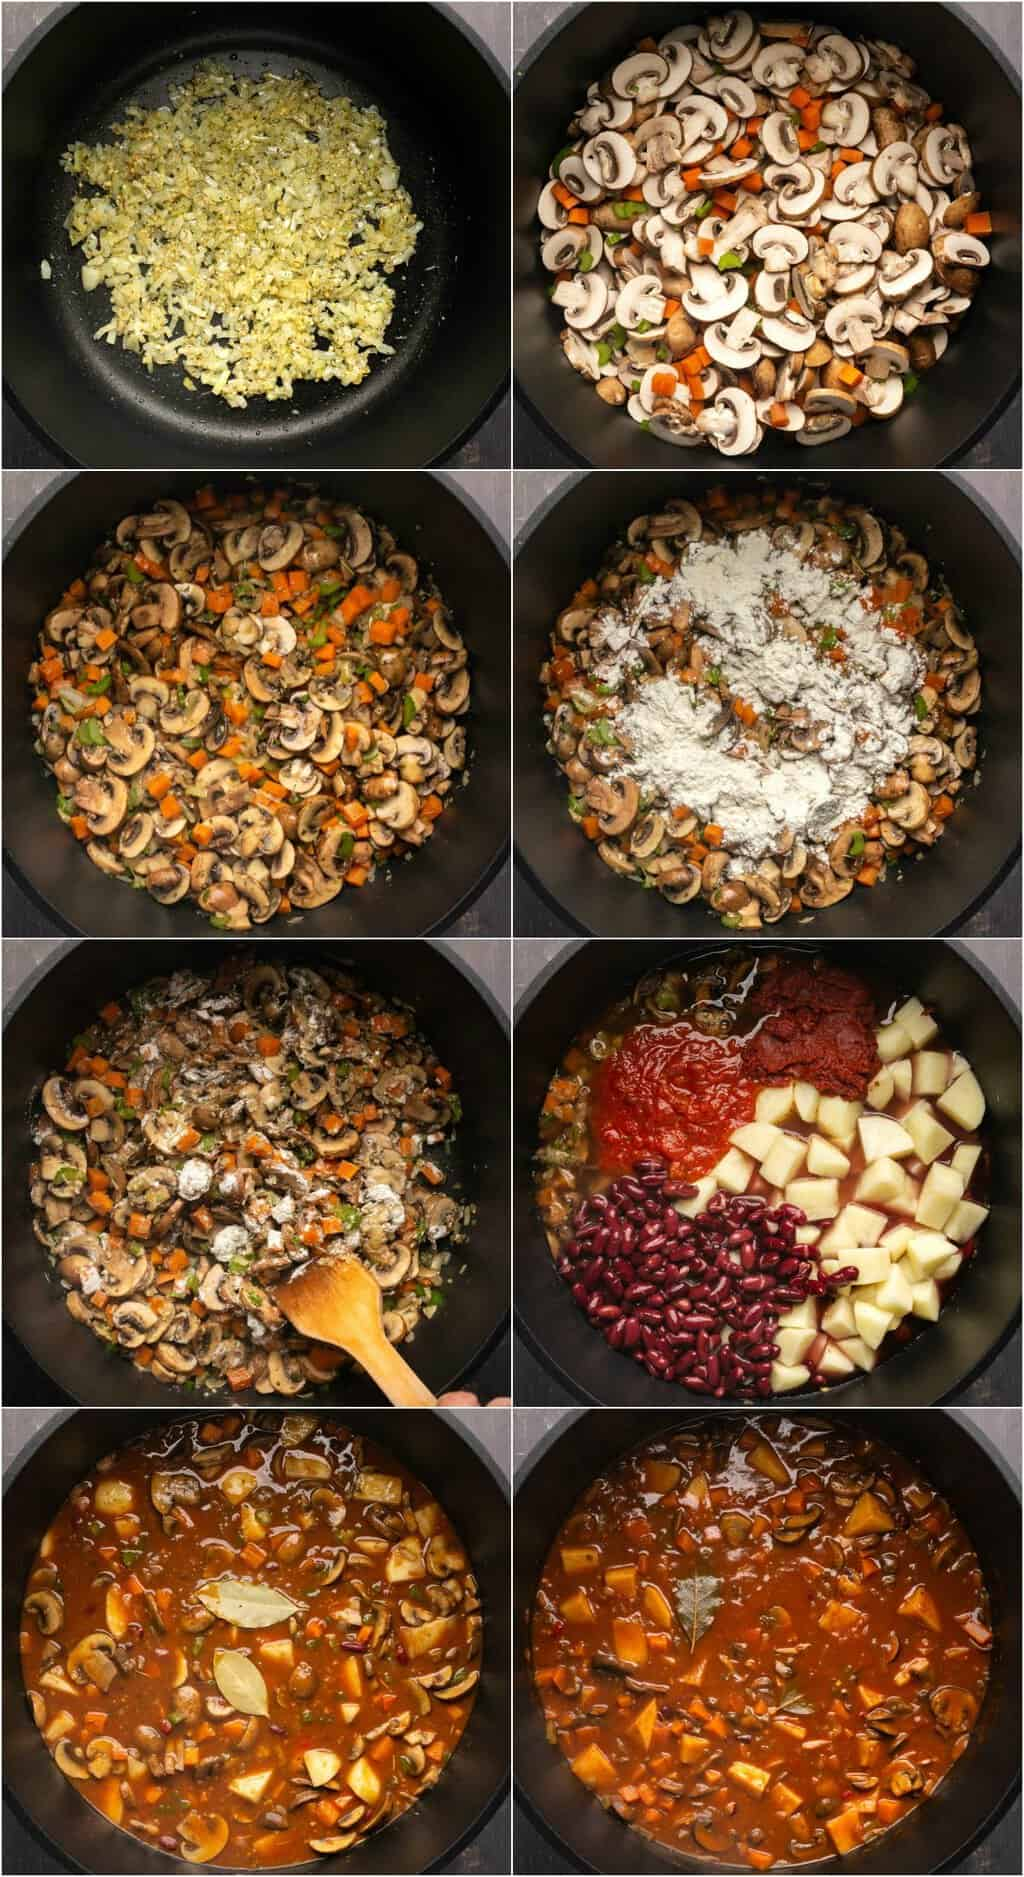 Step by step process photo collage of making vegan stew.